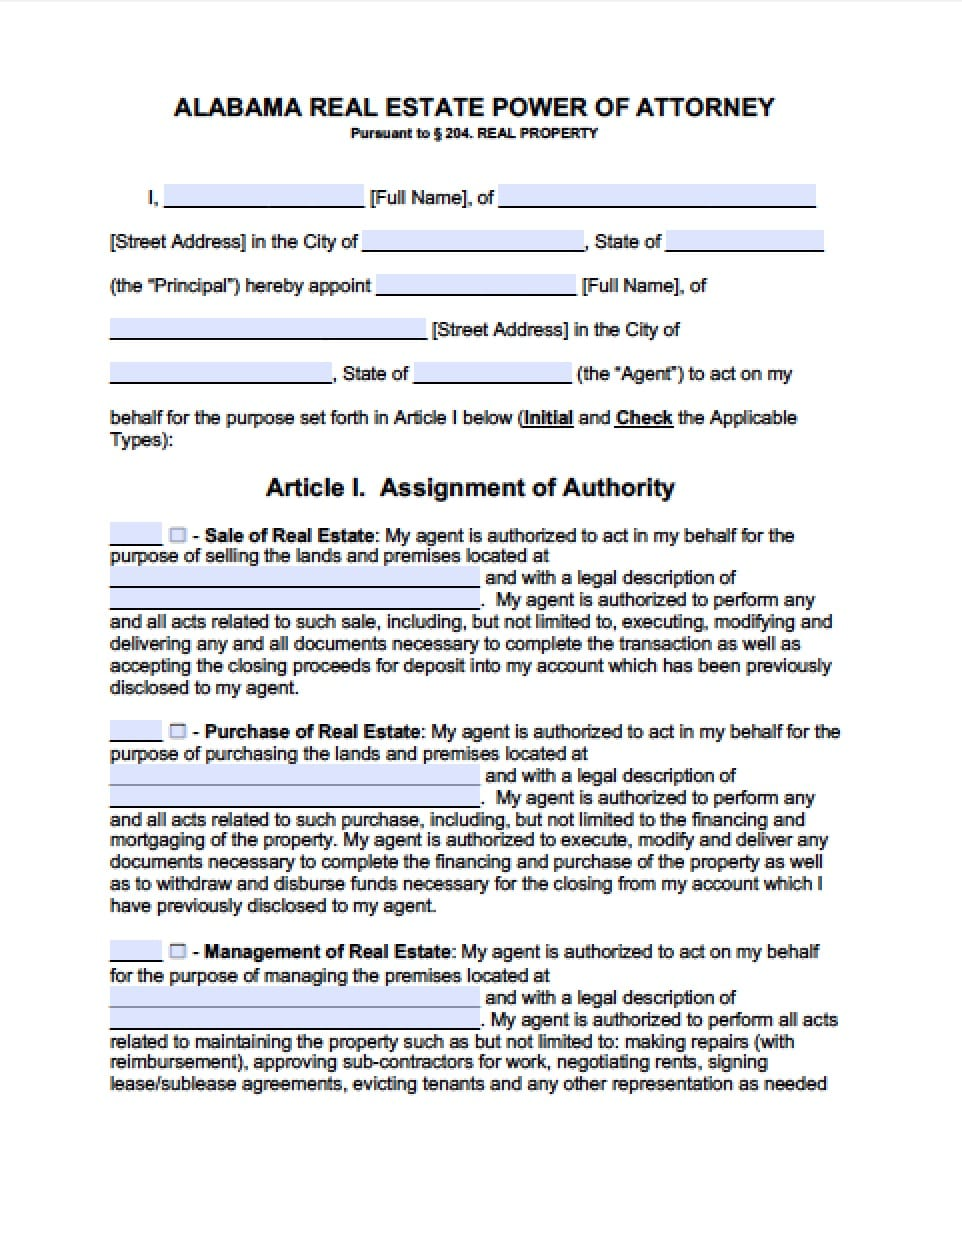 alabama power of attorney form